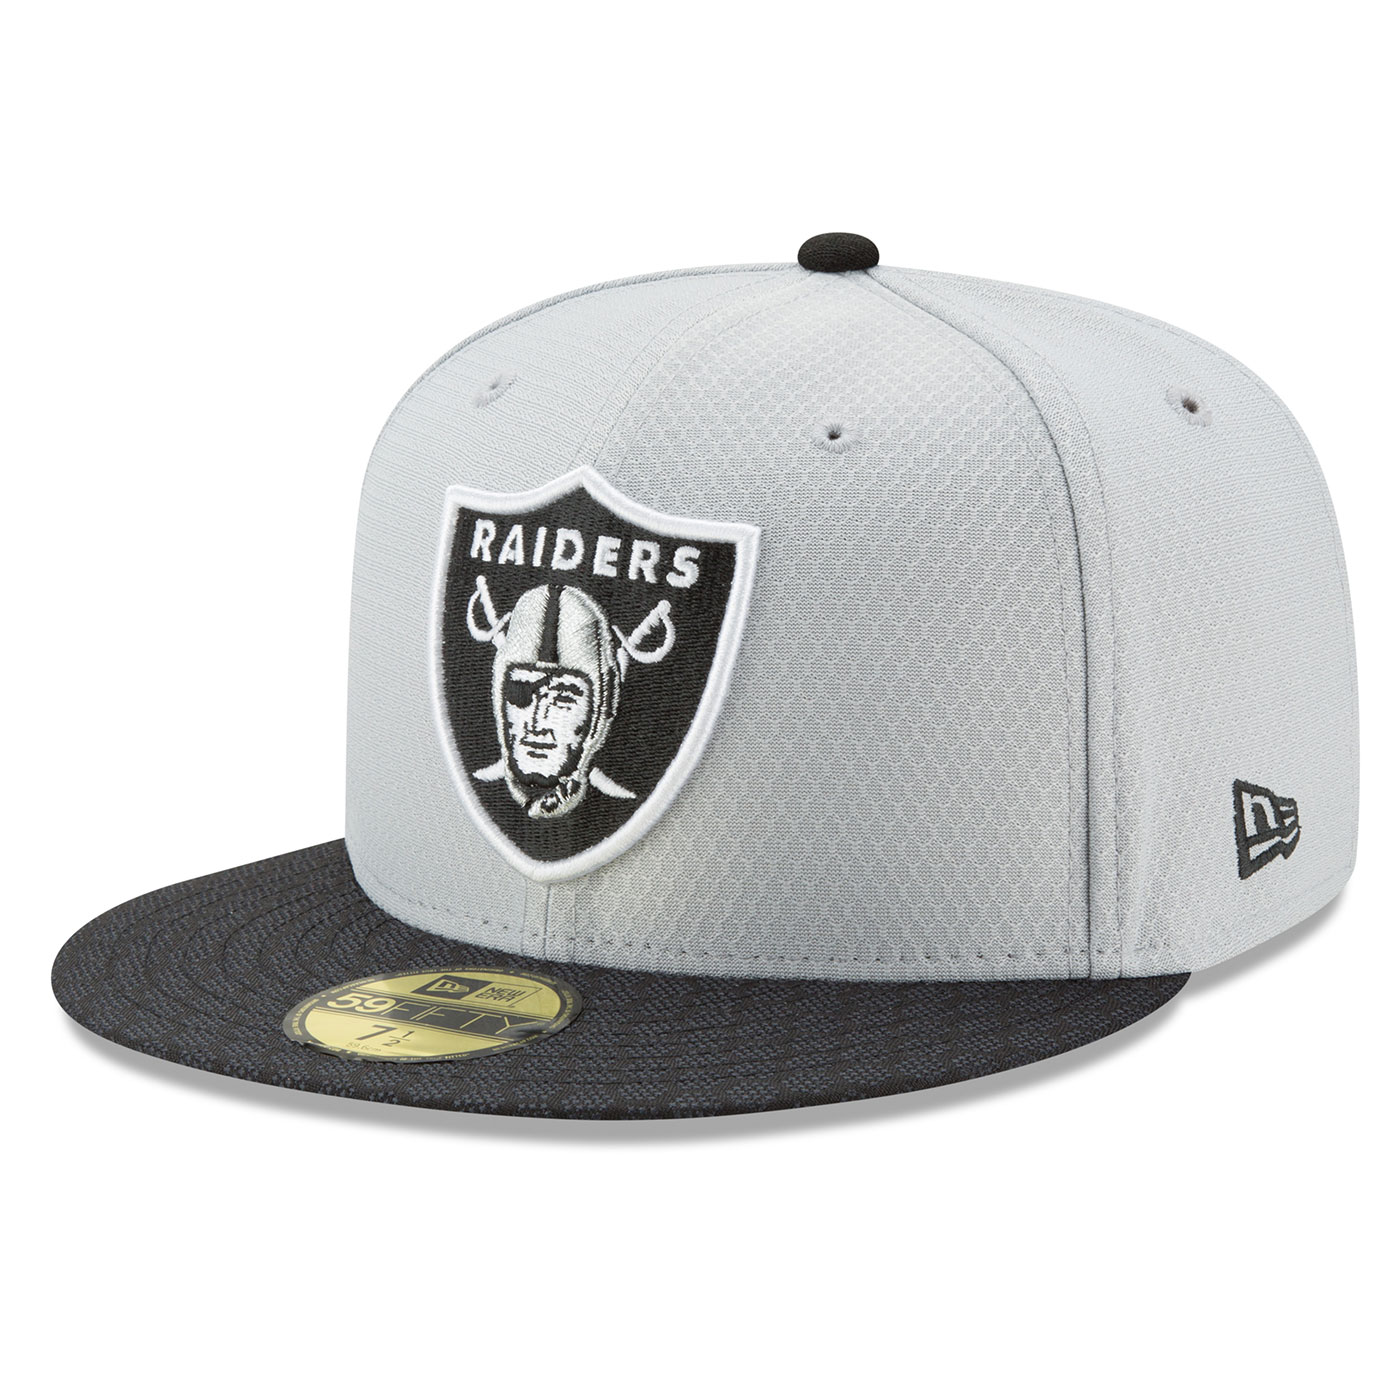 c5d934fa7 Raiders New Era 59Fifty Official 2017 Sideline Grey Fitted Cap